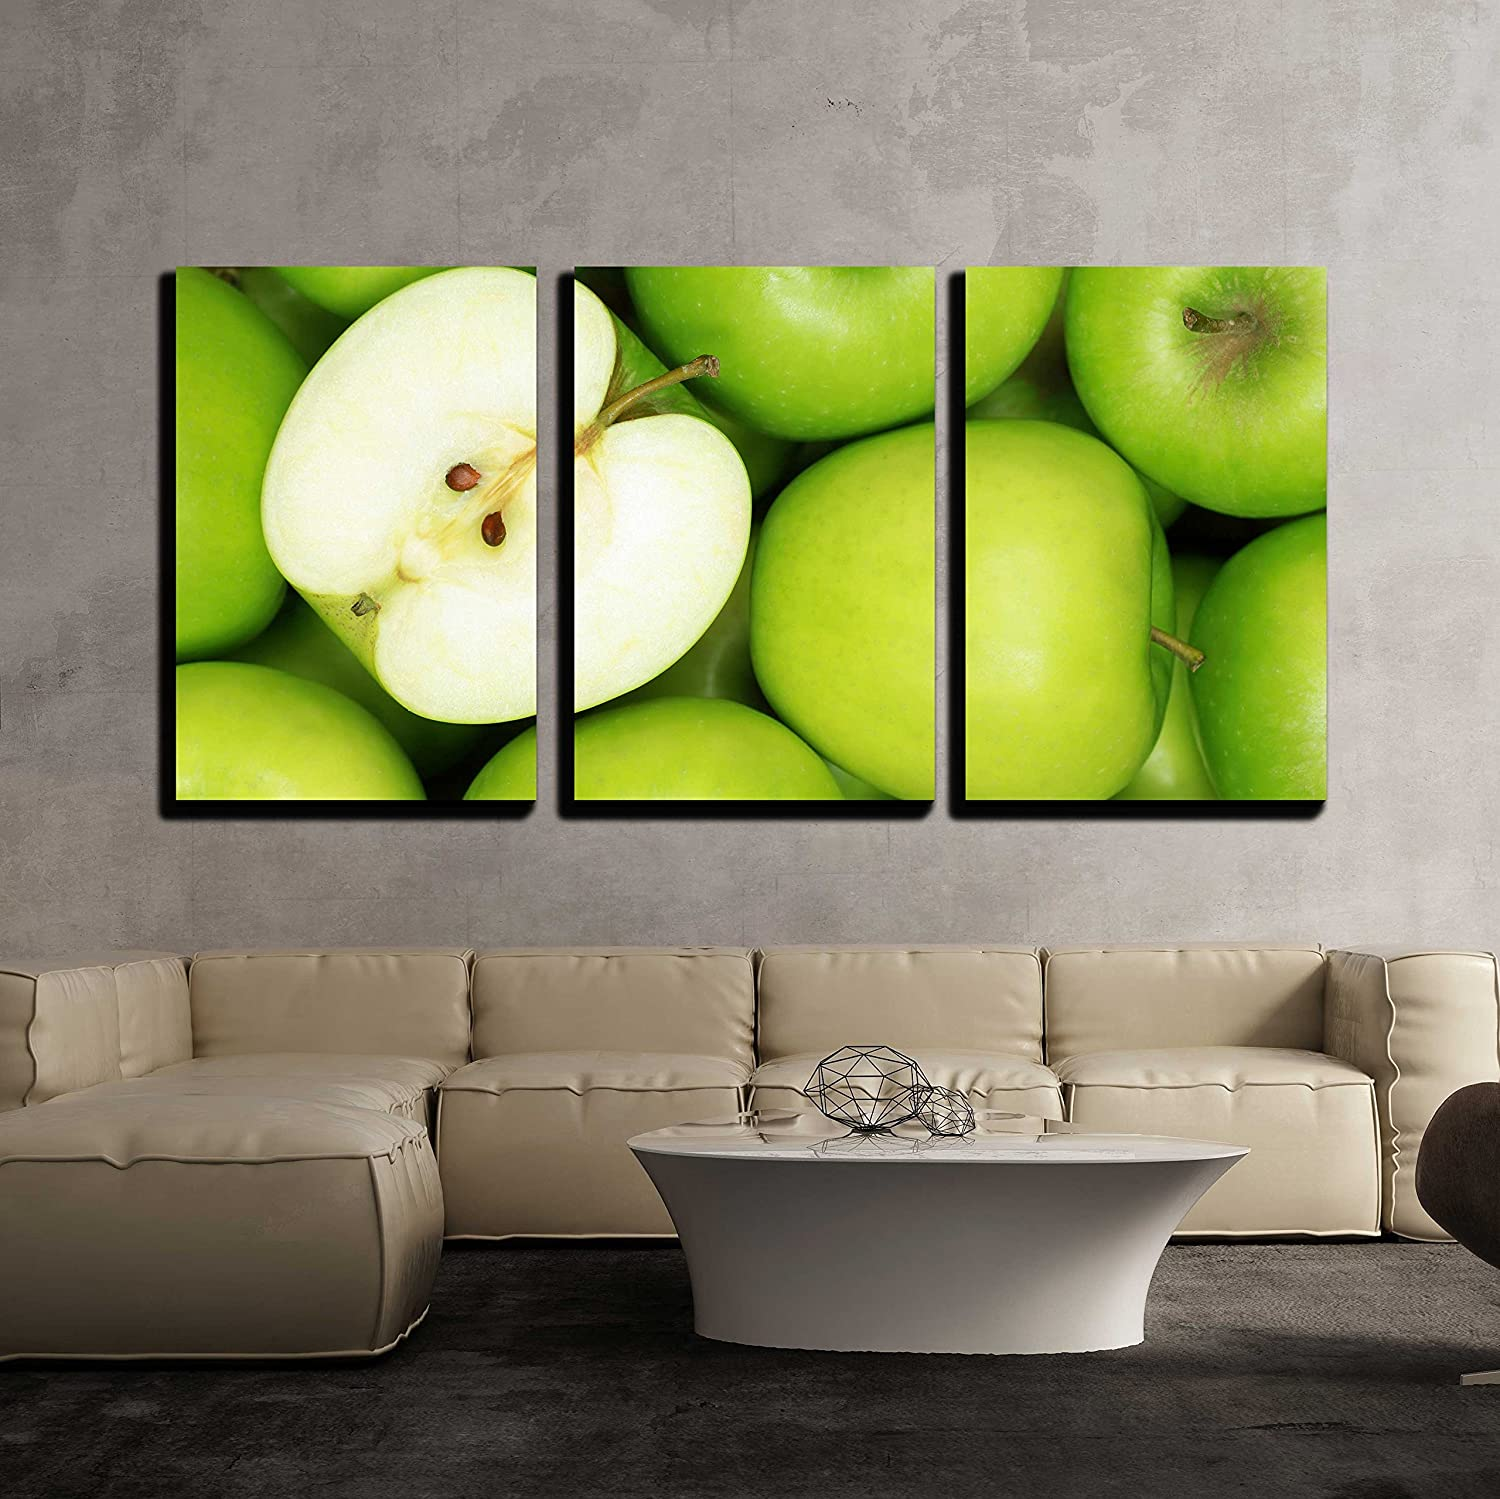 """wall26-3 Piece Canvas Wall Art - Group of Green Apples Forming a Background - Modern Home Decor Stretched and Framed Ready to Hang - 16""""x24""""x3 Panels"""